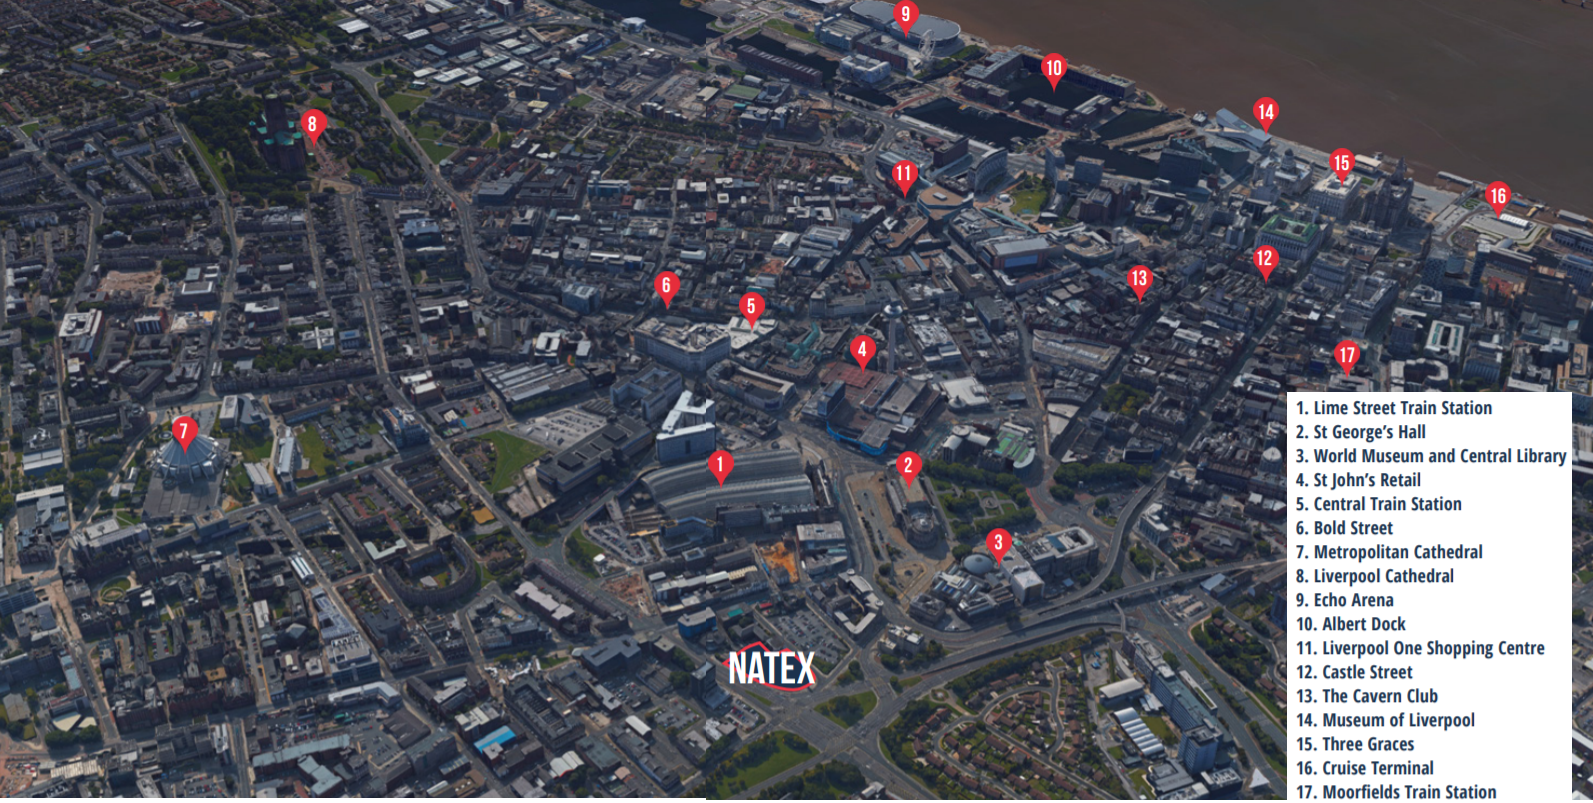 Natex is located within 5 minutes walk of 2 of Liverpool's top universities. It also in close proximity to some of the city's top hotspots.